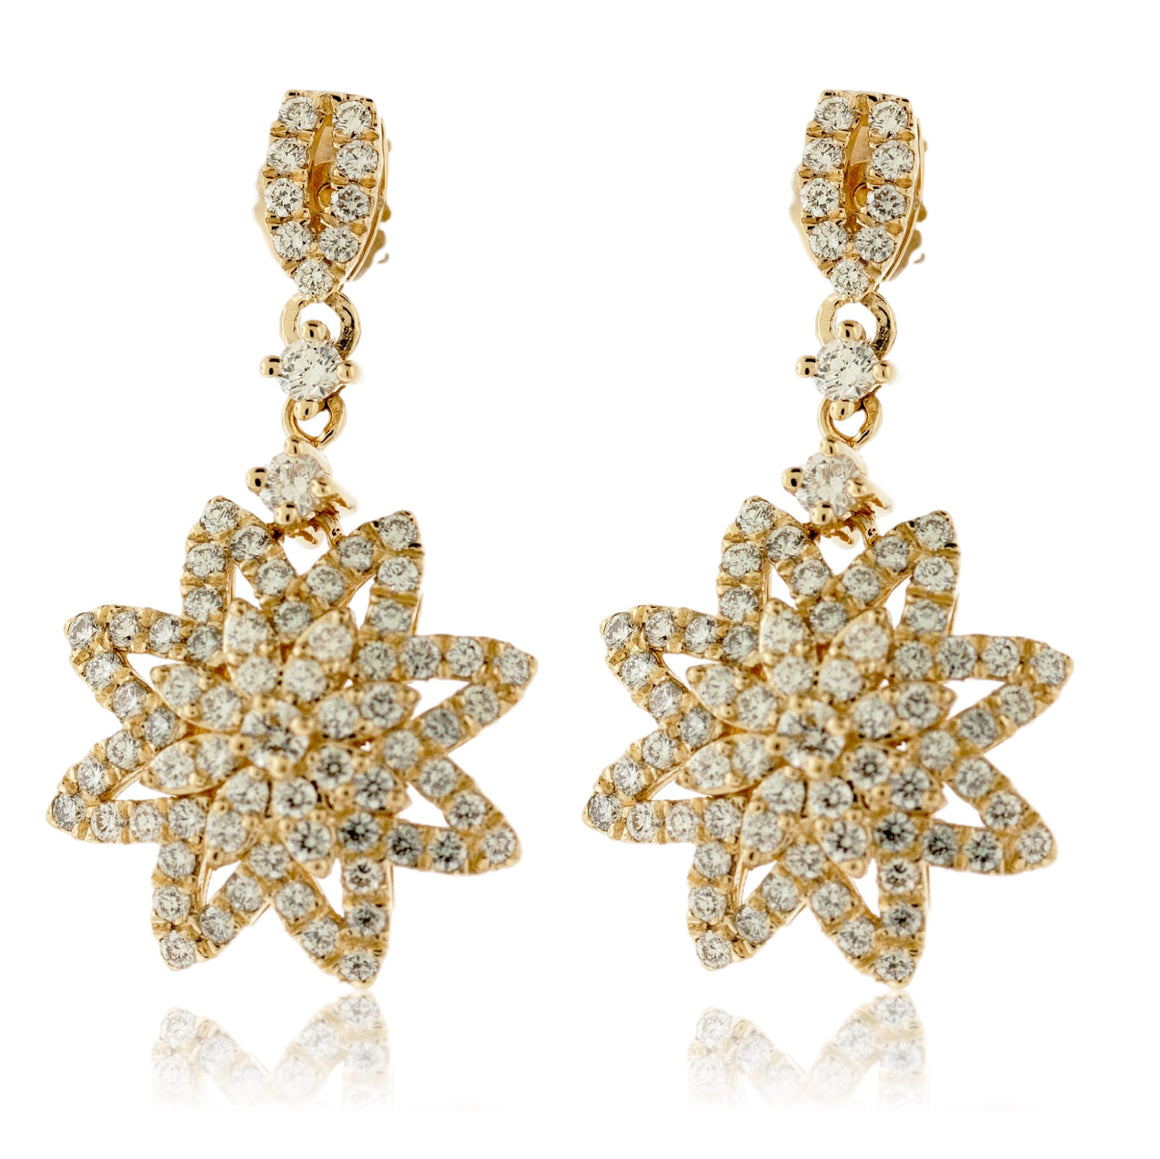 Pave Diamond Snowflake Earrings